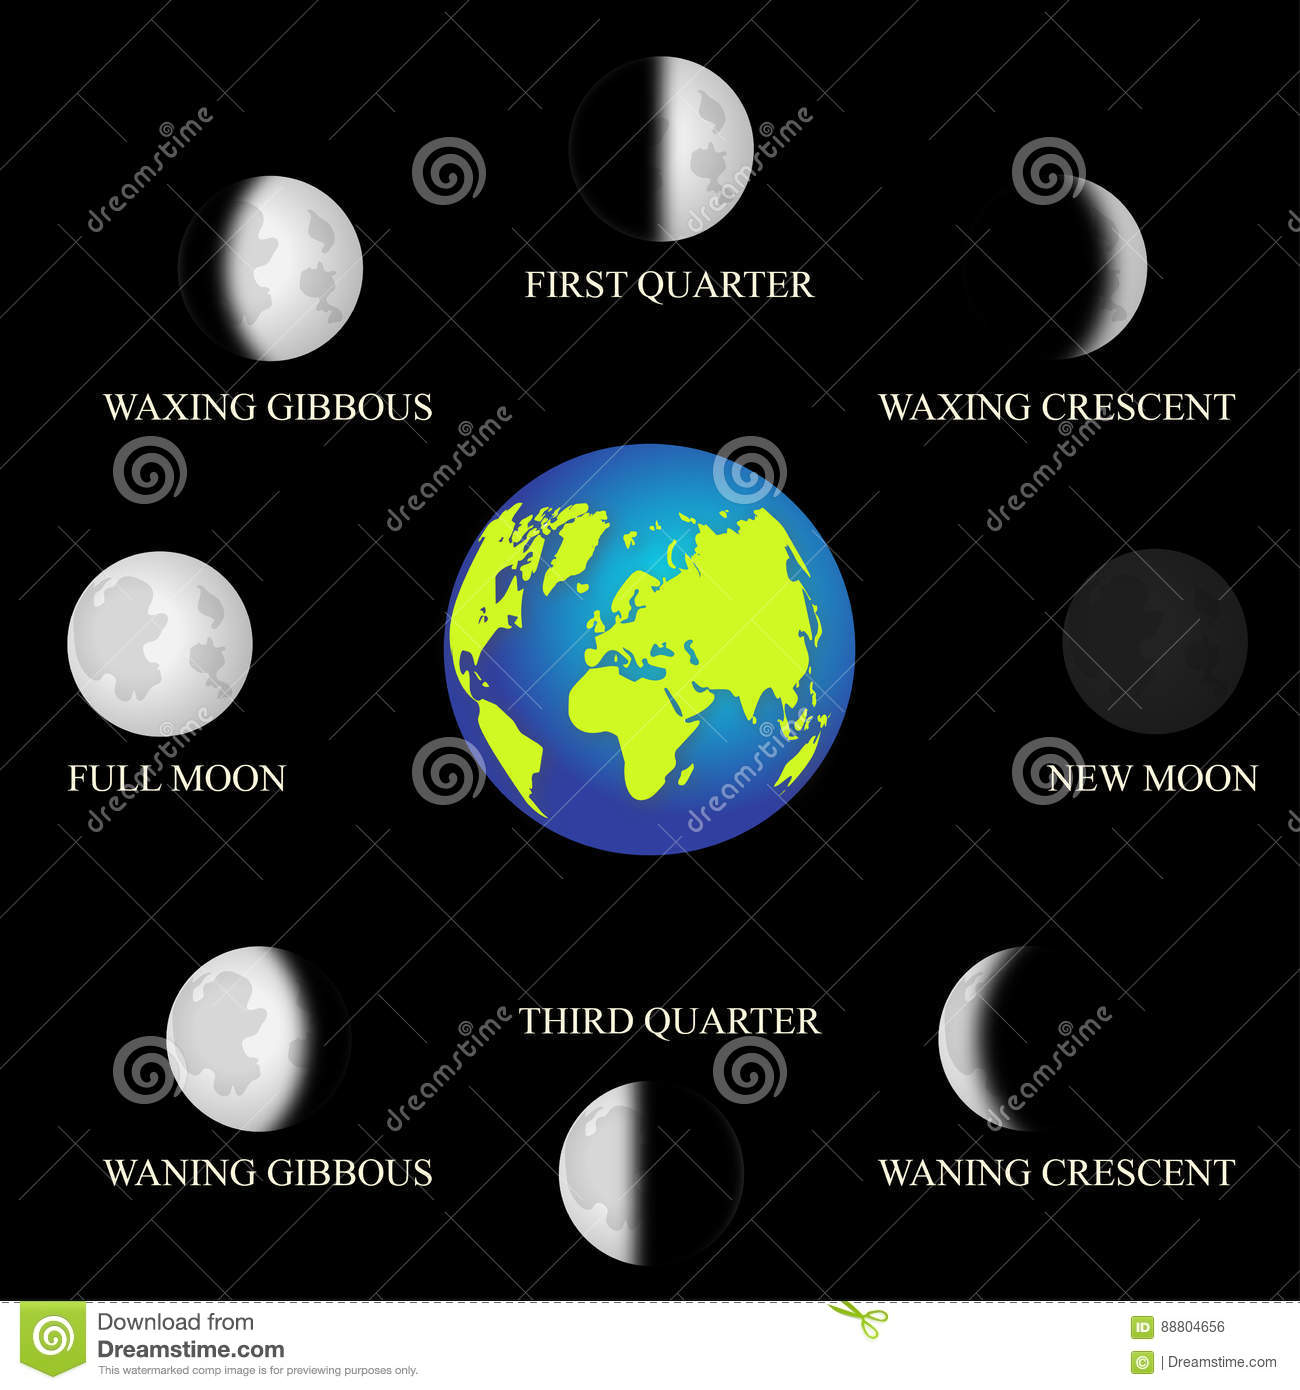 Basic Phases Of The Moon Stock Vector Illustration Of